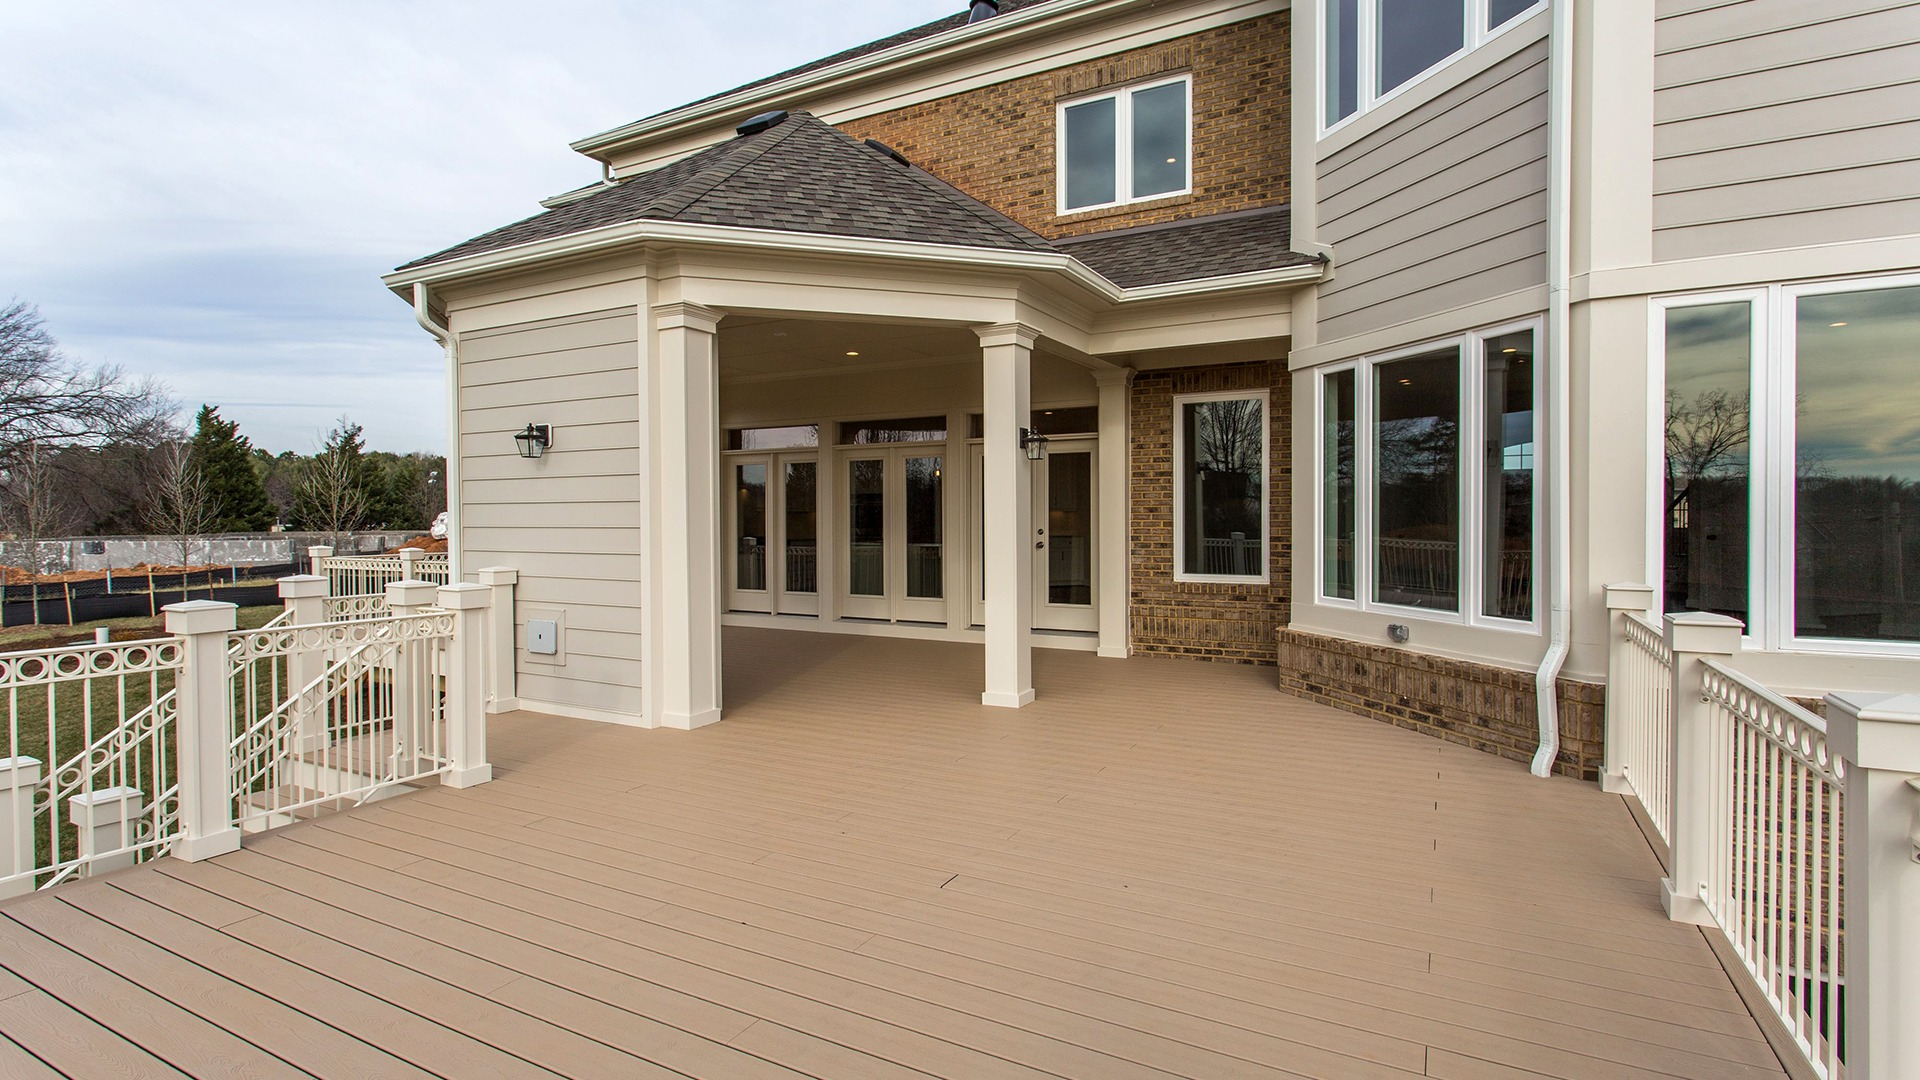 The rear deck of the Winthrop on Fallsgate Homesite 2.